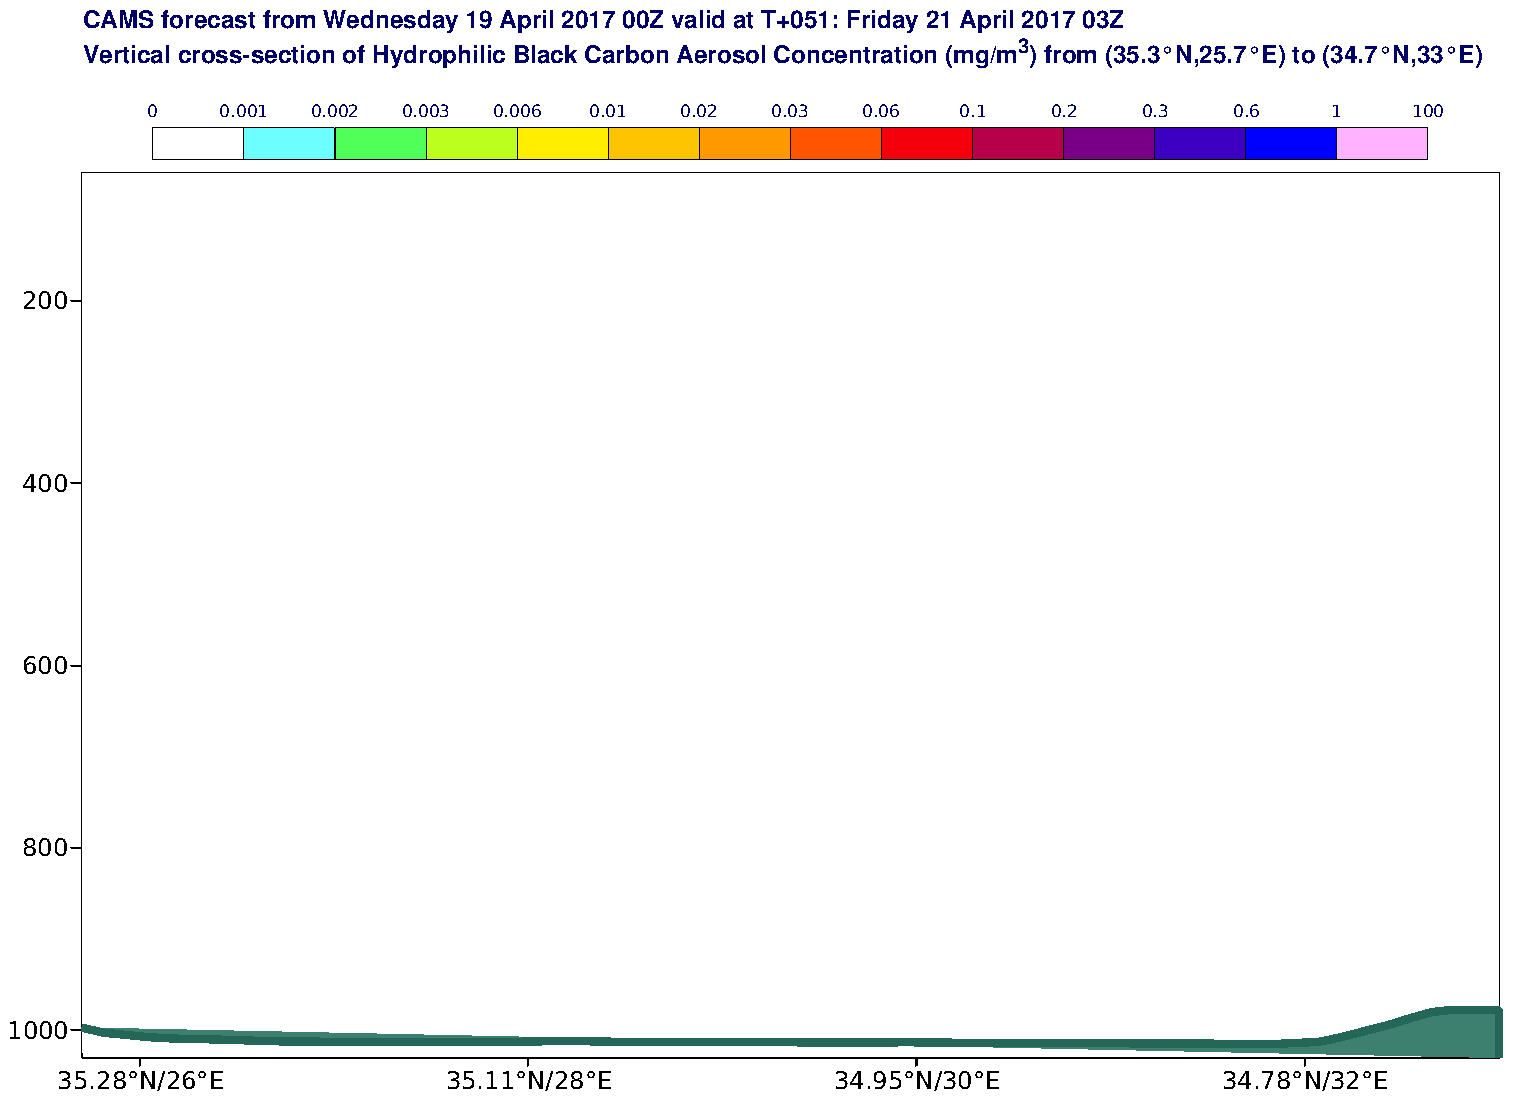 Vertical cross-section of Hydrophilic Black Carbon Aerosol Concentration (mg/m3) valid at T51 - 2017-04-21 03:00